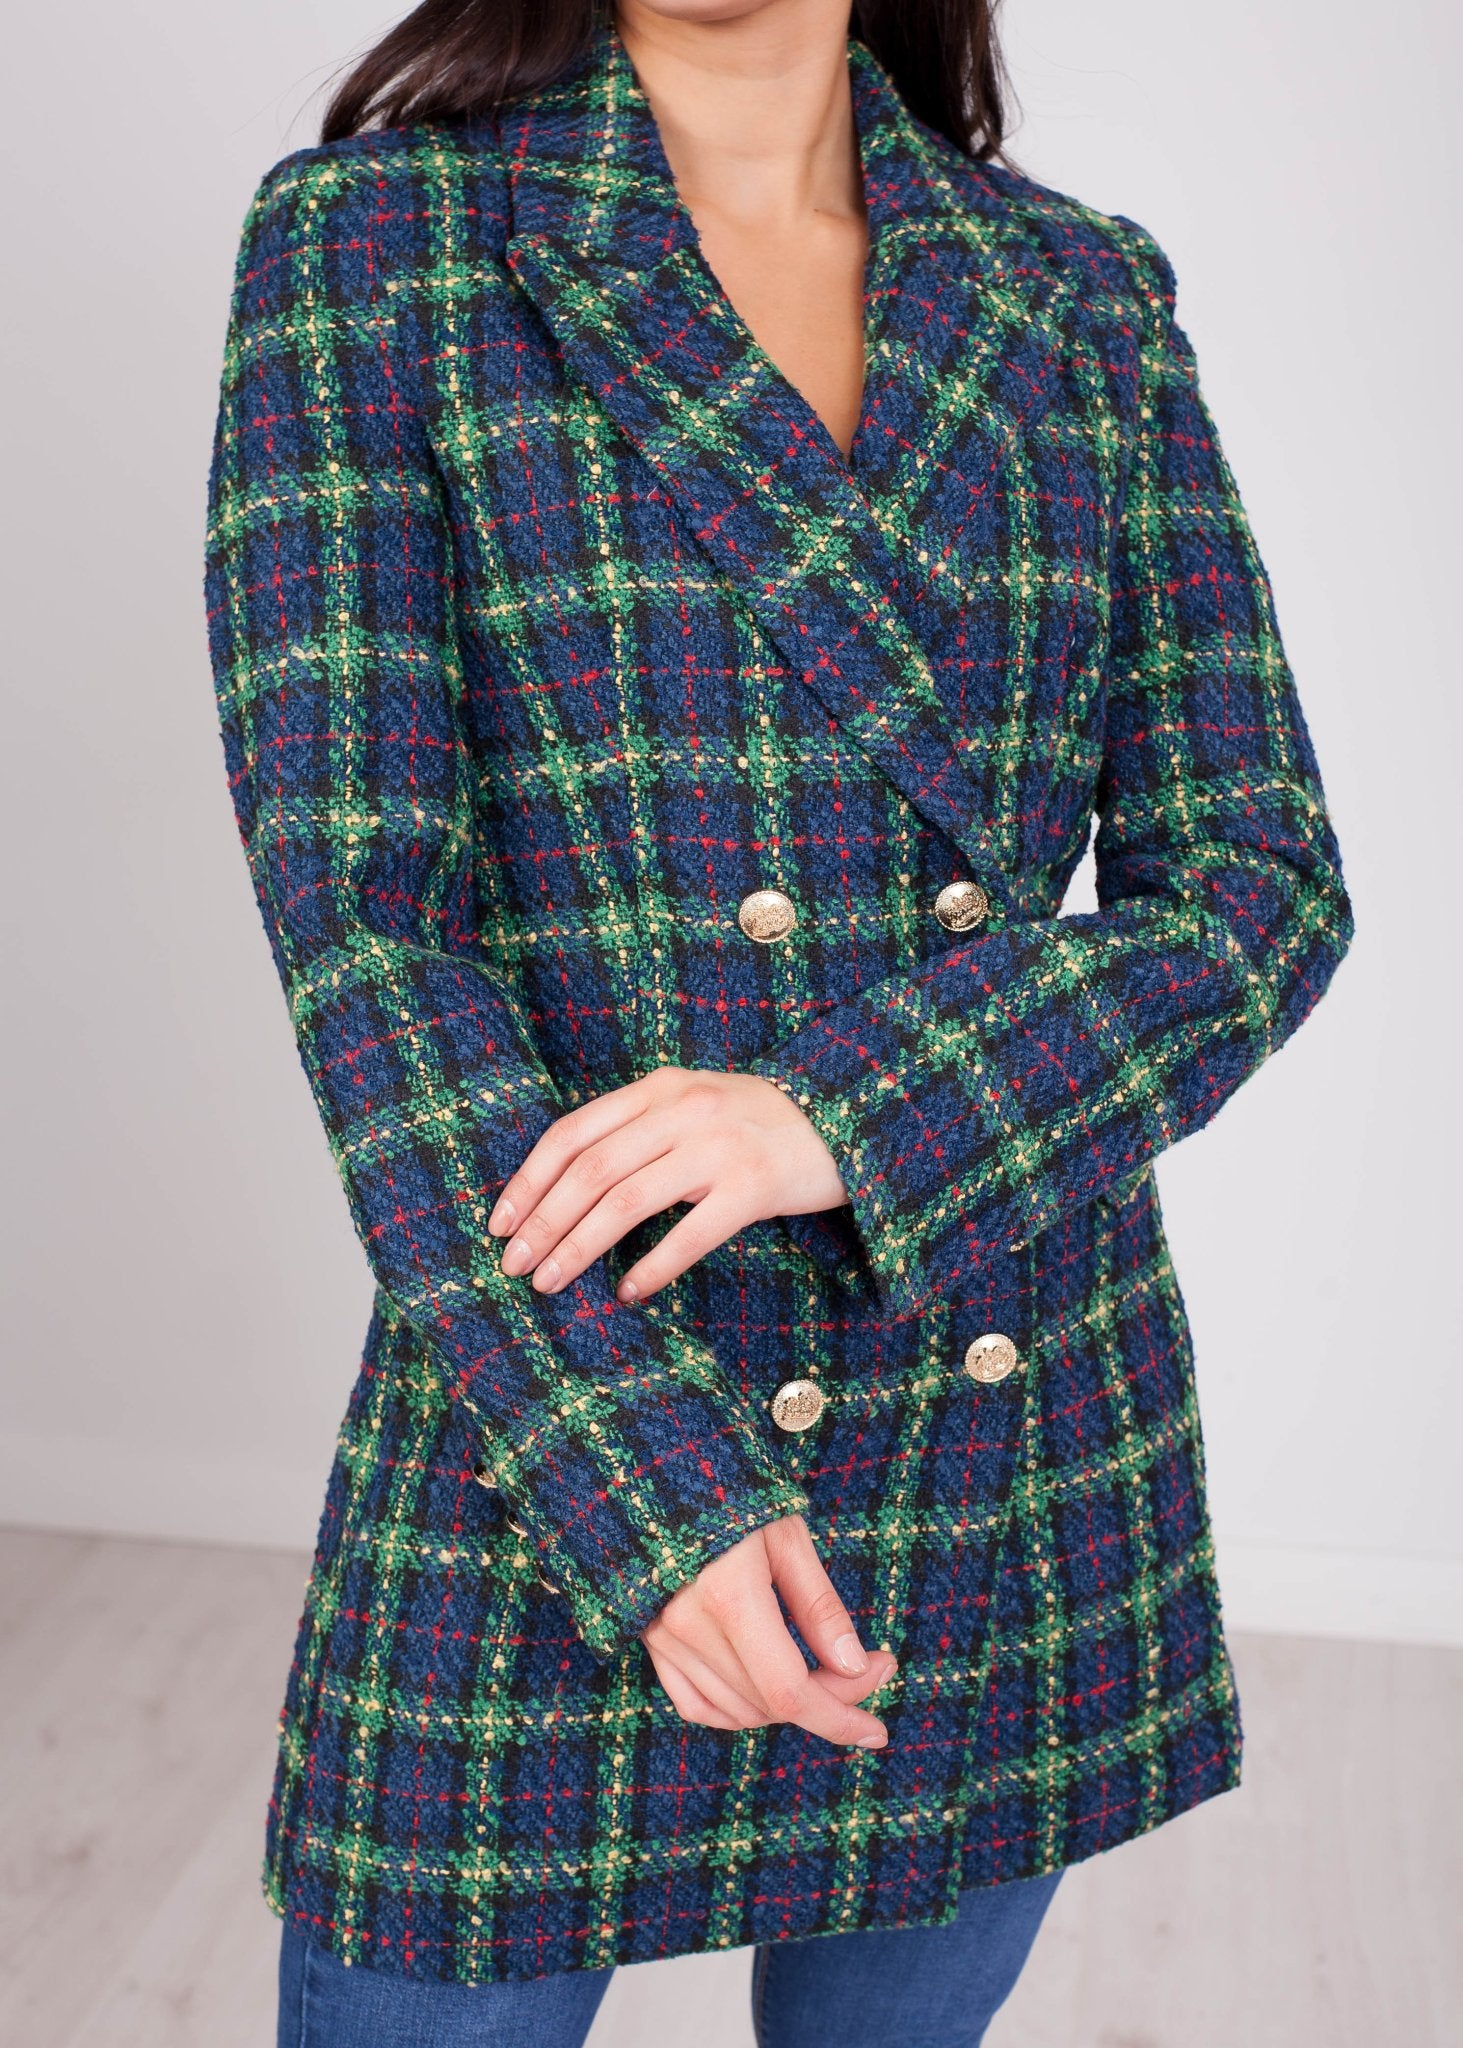 Arabella Tweed Blazer in Navy & Green - The Walk in Wardrobe